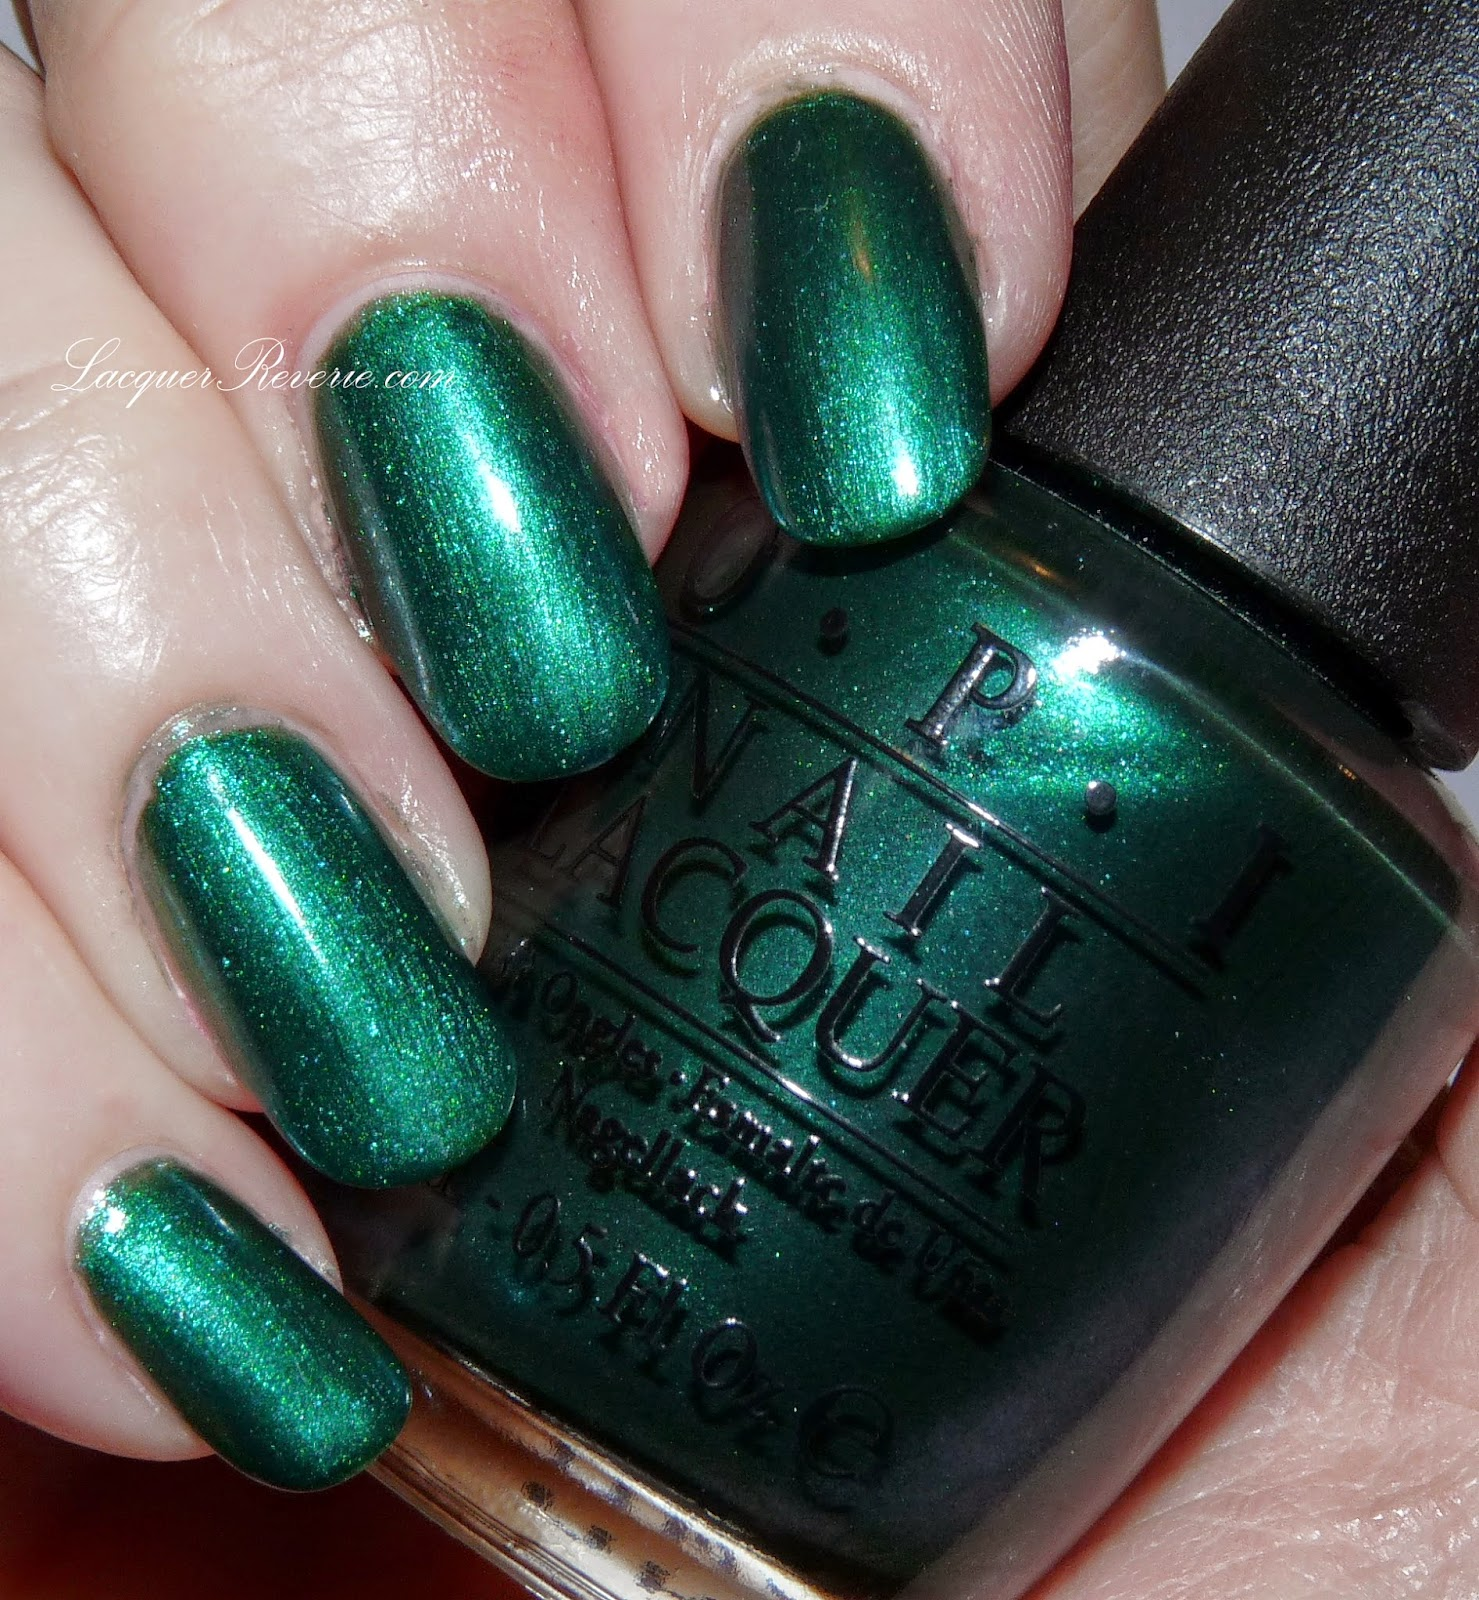 Lacquer Reverie: Emerald Greens: OPI, Ulta, and Zoya